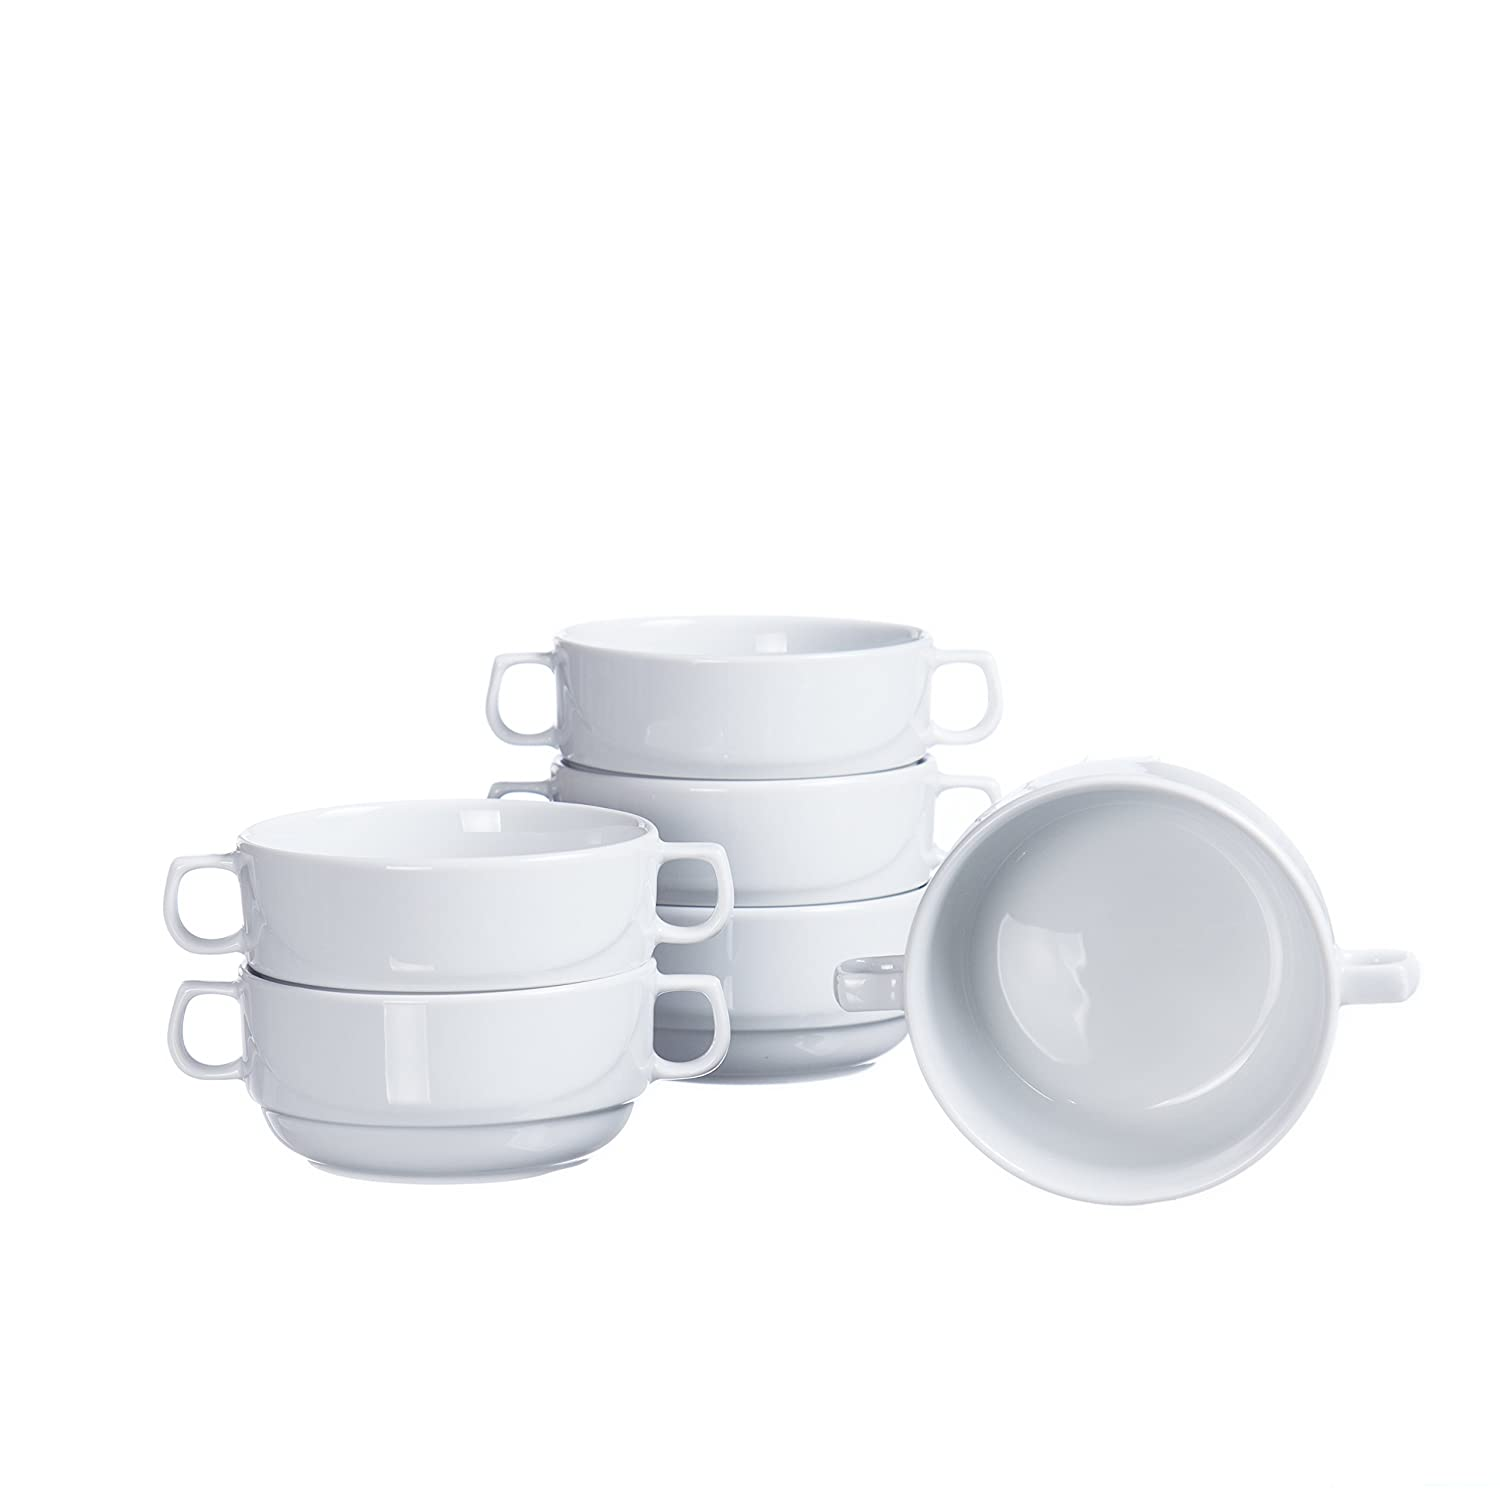 Stackable Soup/Cereal BOWLS with Handles (4-piece, 6-piece, 12-piece Sets), 10.8 Oz, White Porcelain, Restaurant&Hotel Quality (4) BF BAF10186